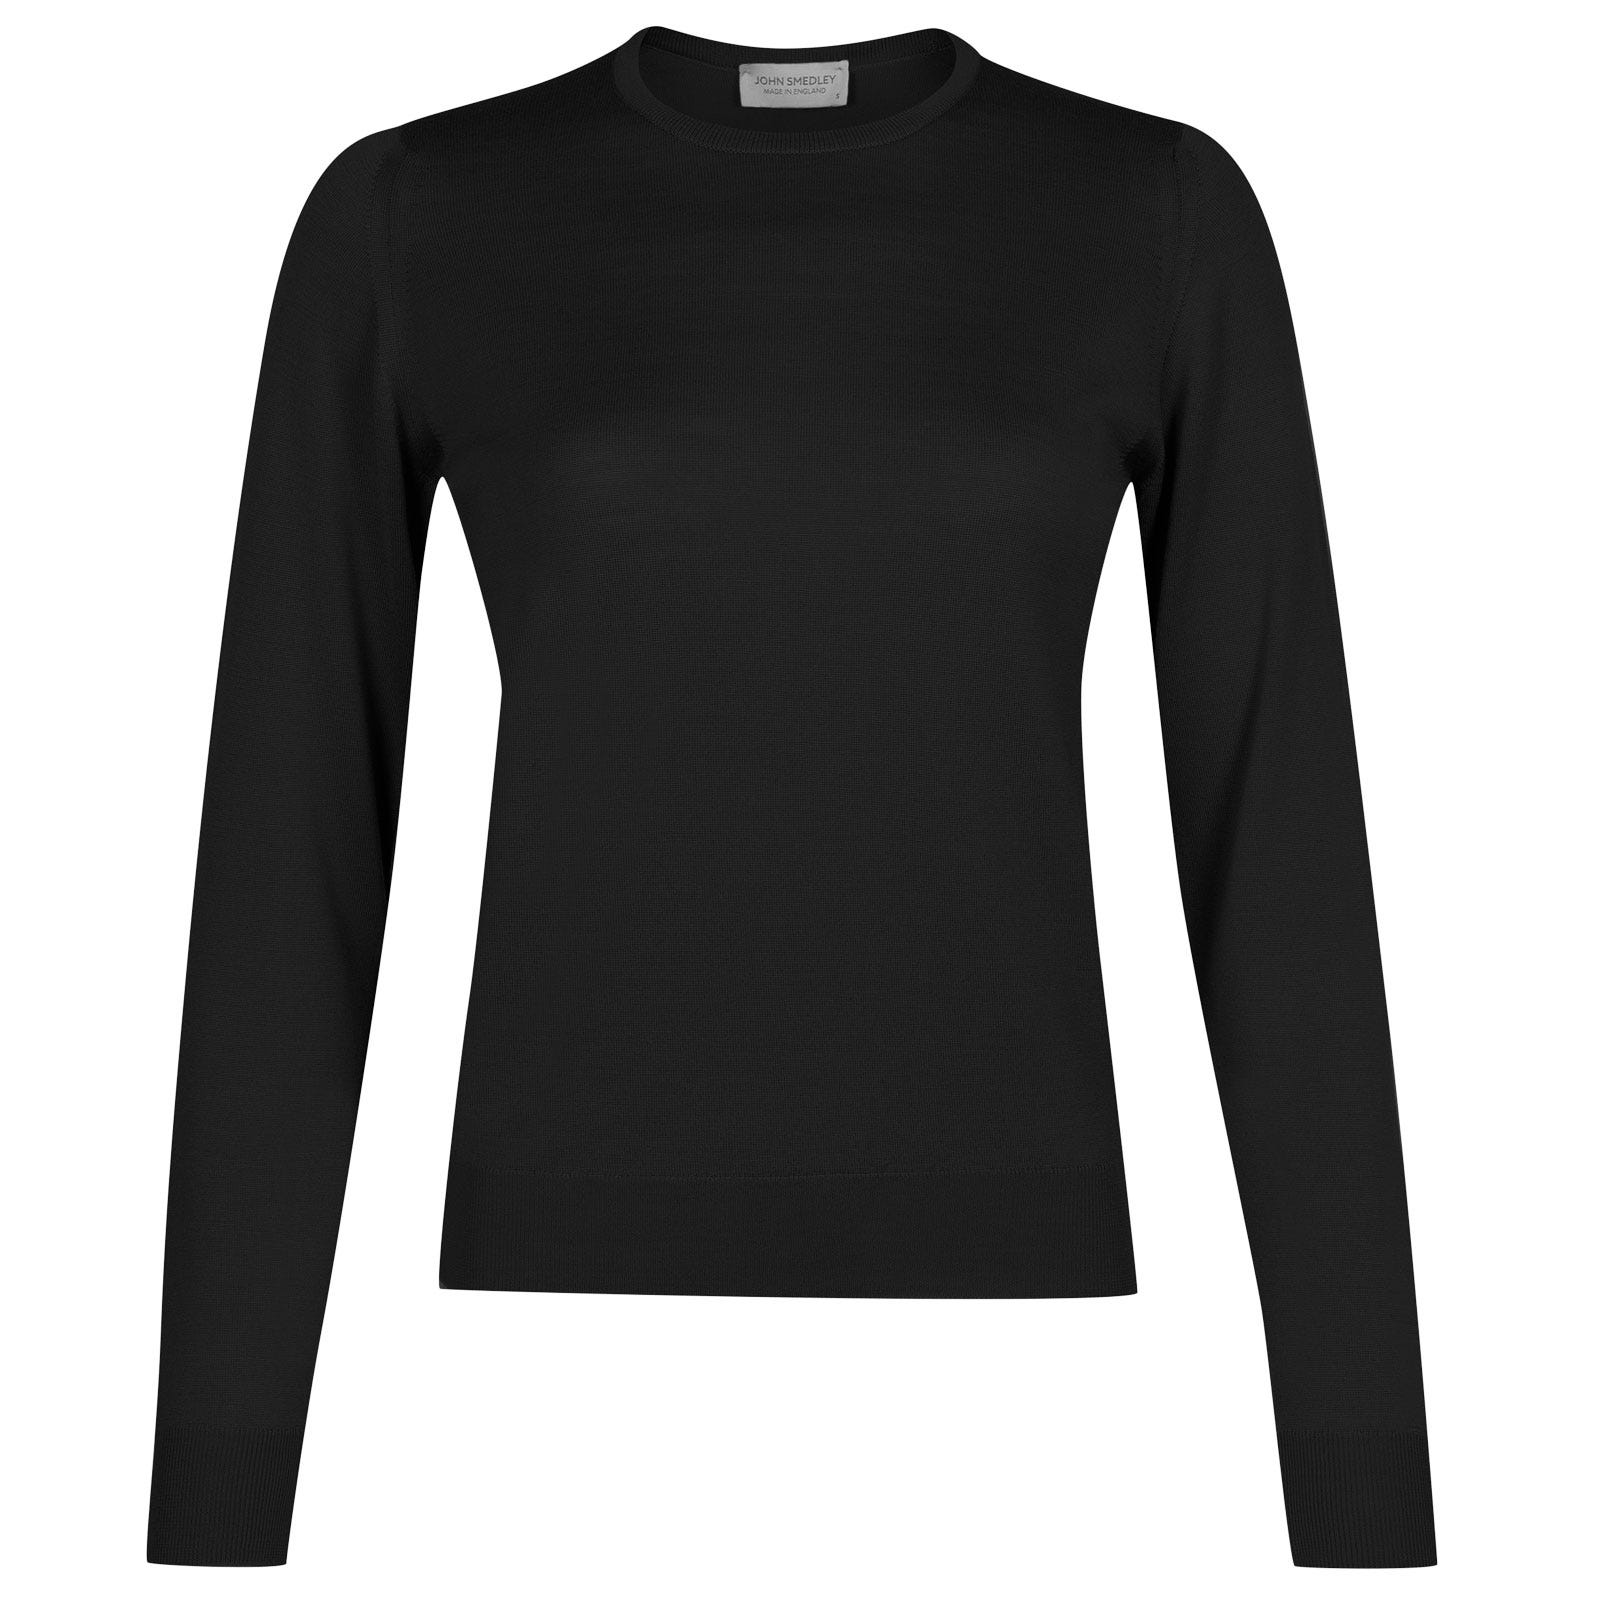 John Smedley venice Merino Wool Sweater in Black-S